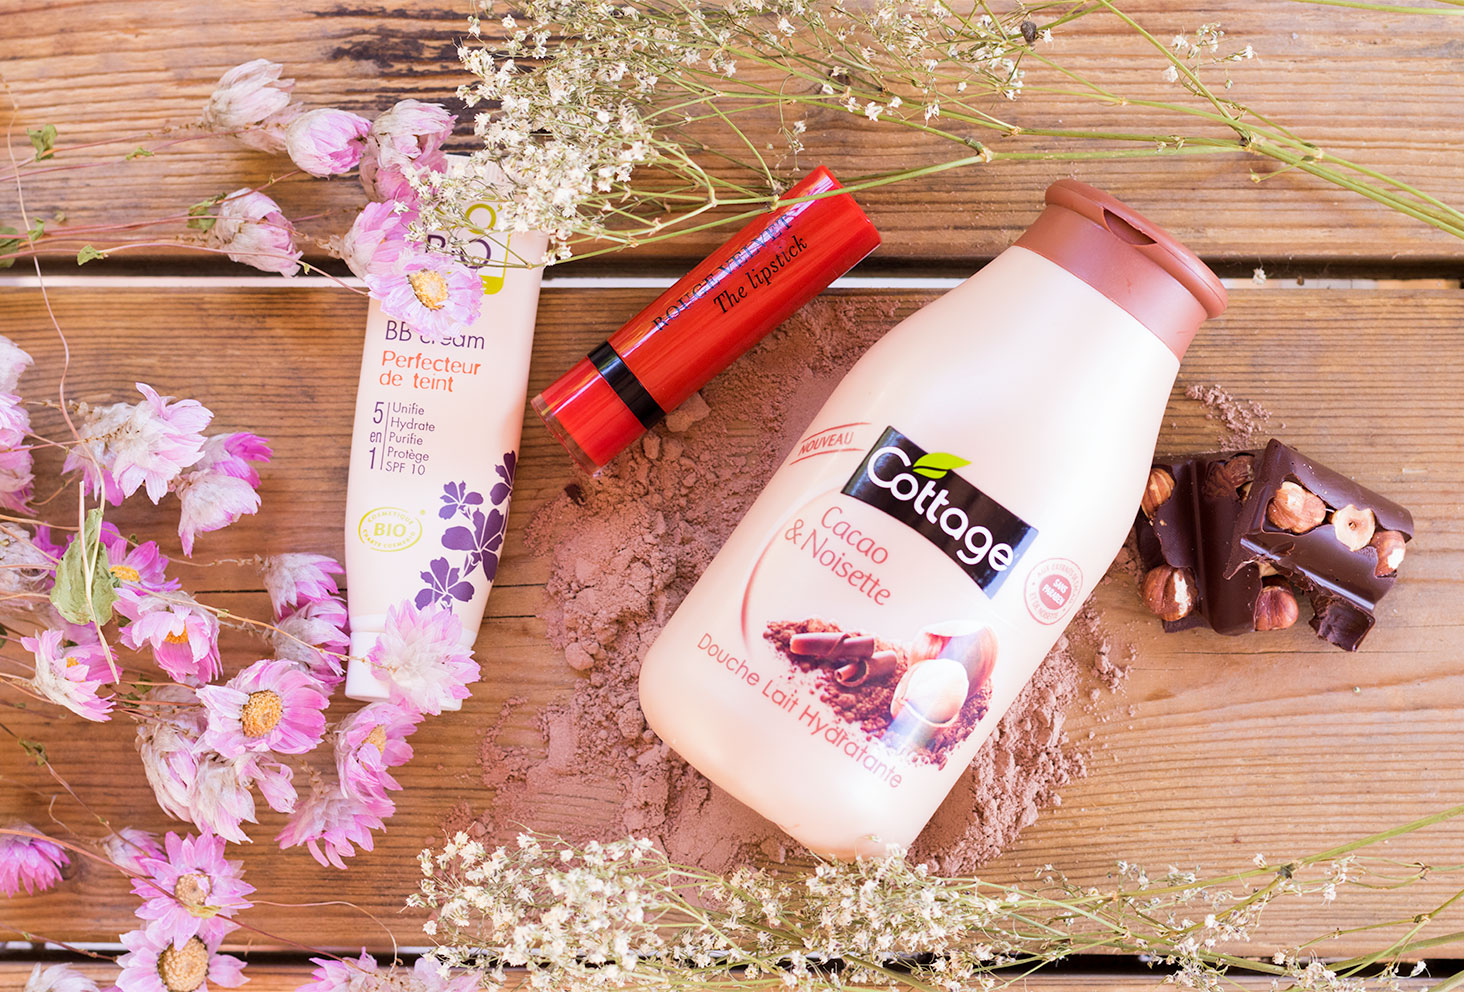 La BB crème de SO'Bio étic, le gel douche cacao noisette de Cottage et le Velvet The Lipstik rouge de Bourjois sur une table en bois au milieu des fleurs séchées et des carreaux de chocolat